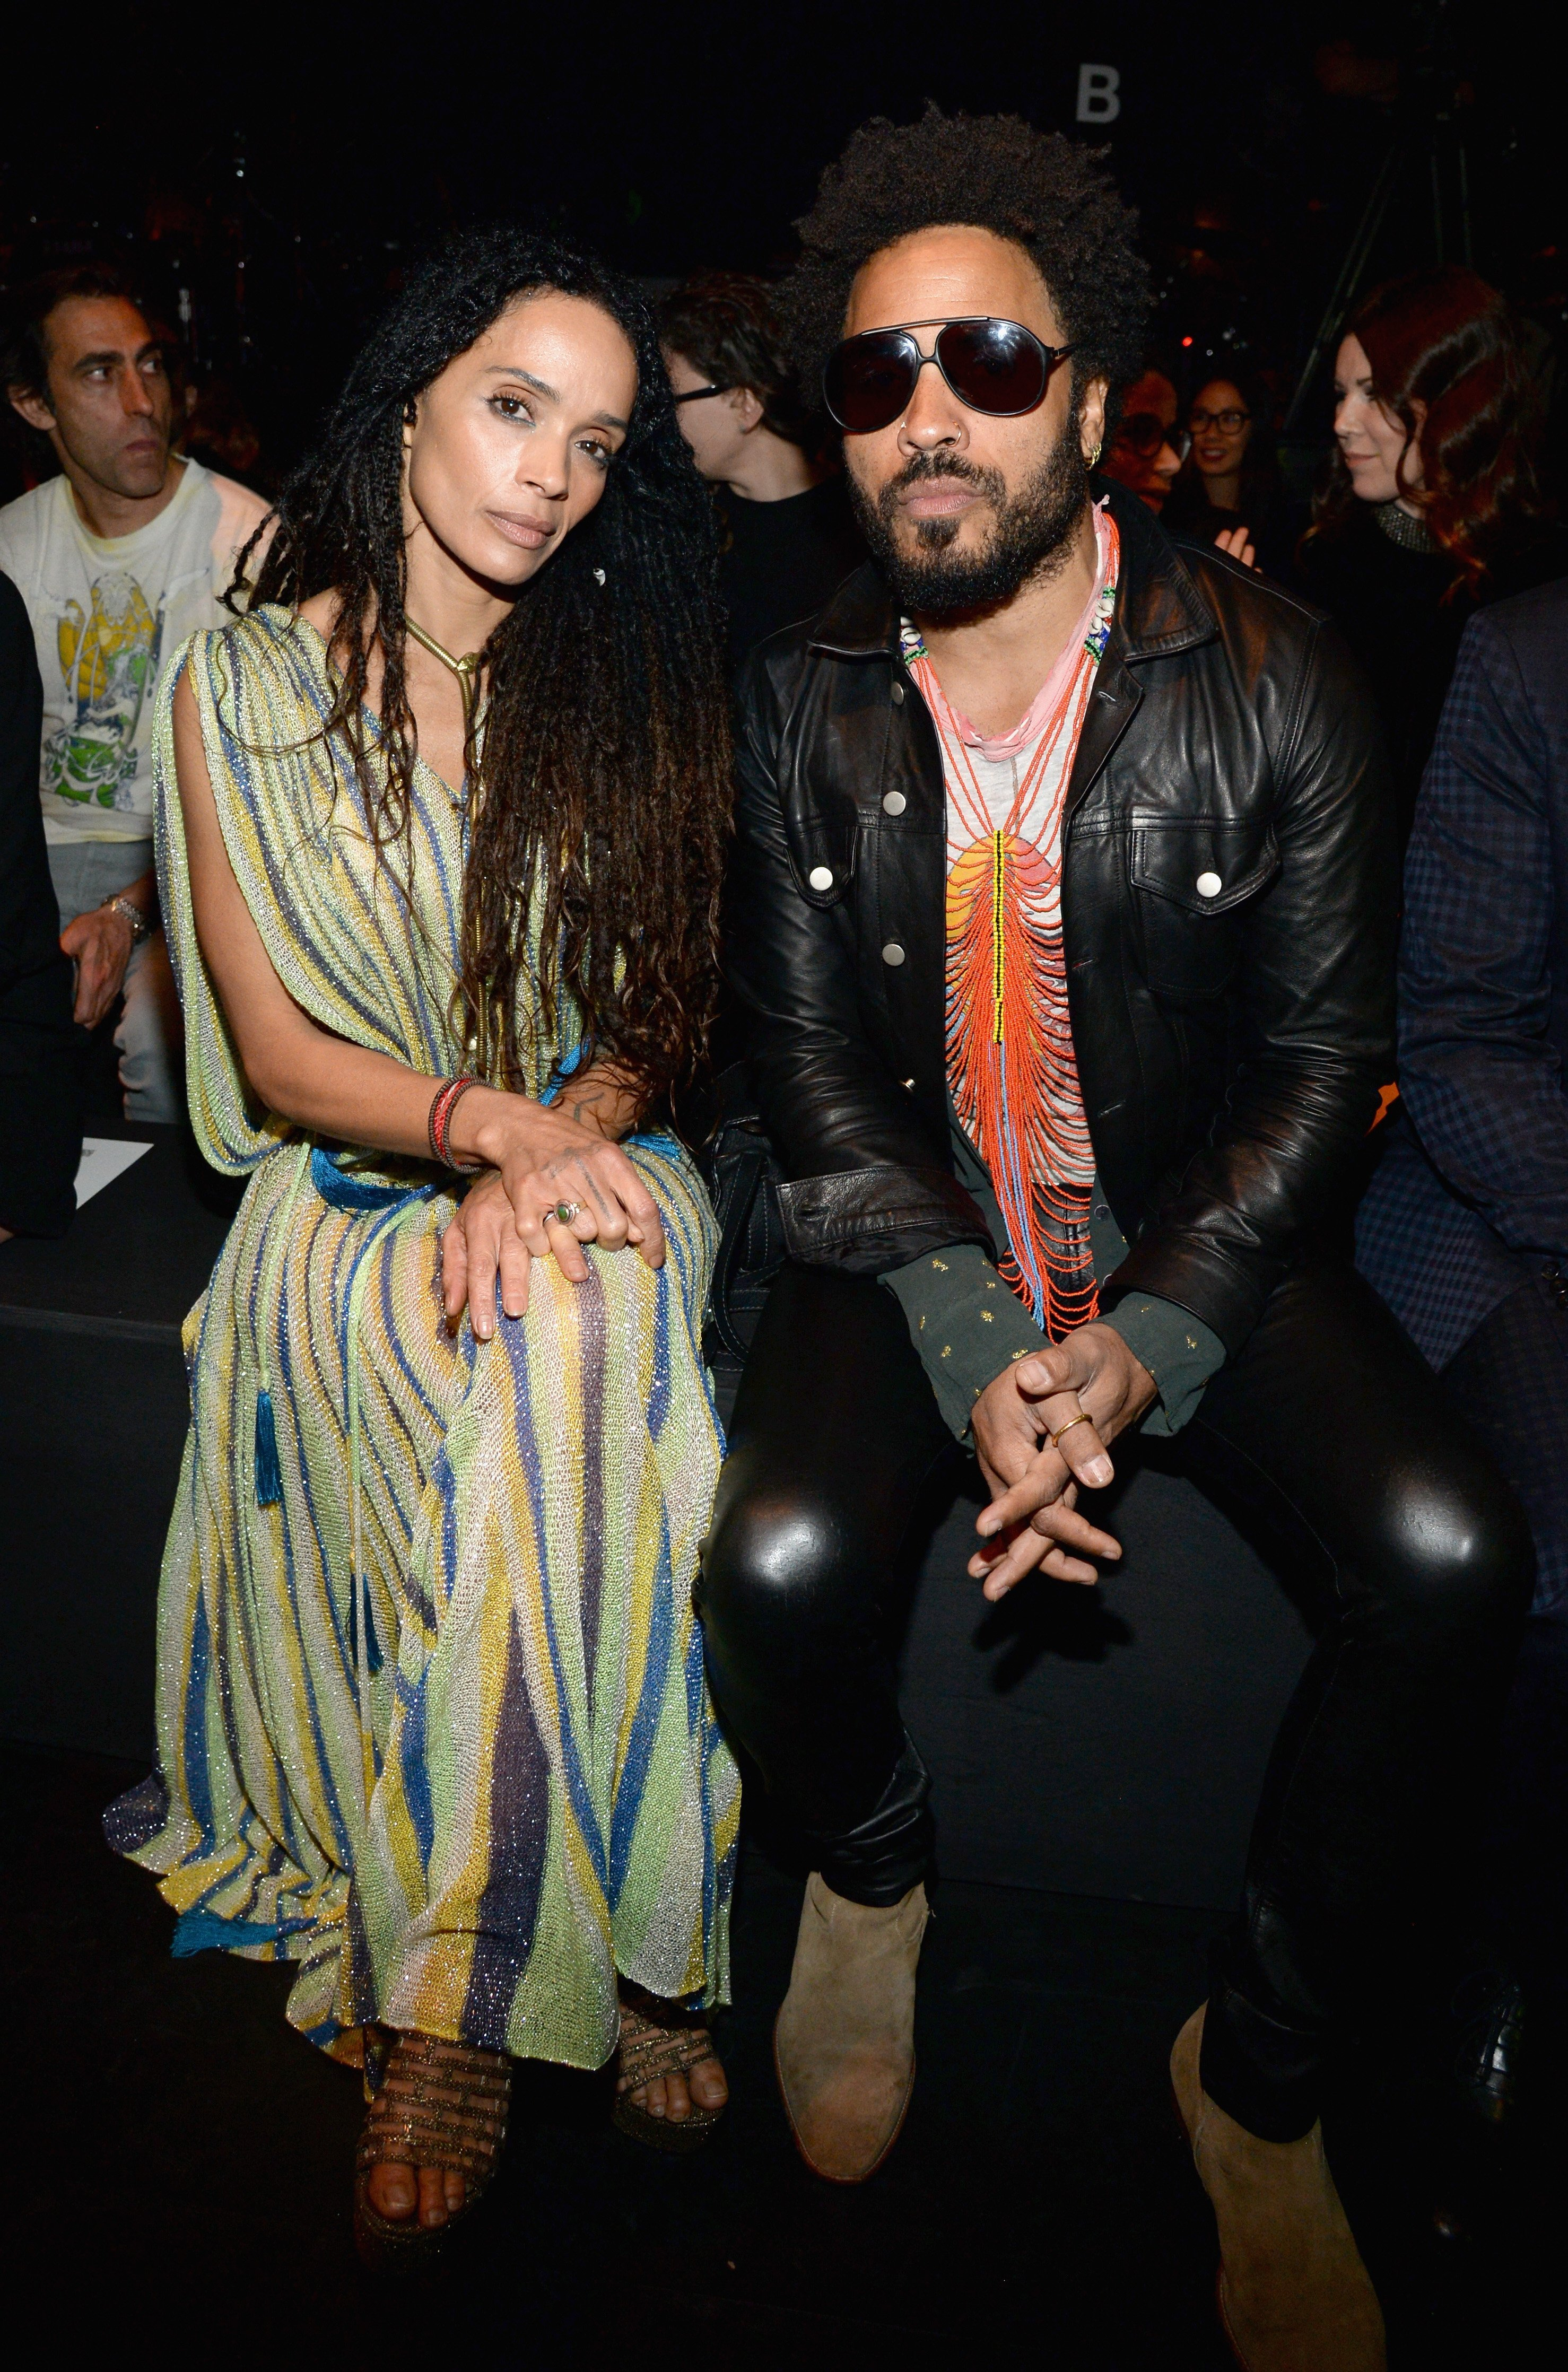 Lisa Bonet and Lenny Kravitz attend Saint Laurent at the Palladium on February 10, 2016 in Los Angeles, California. | Source: Getty Images